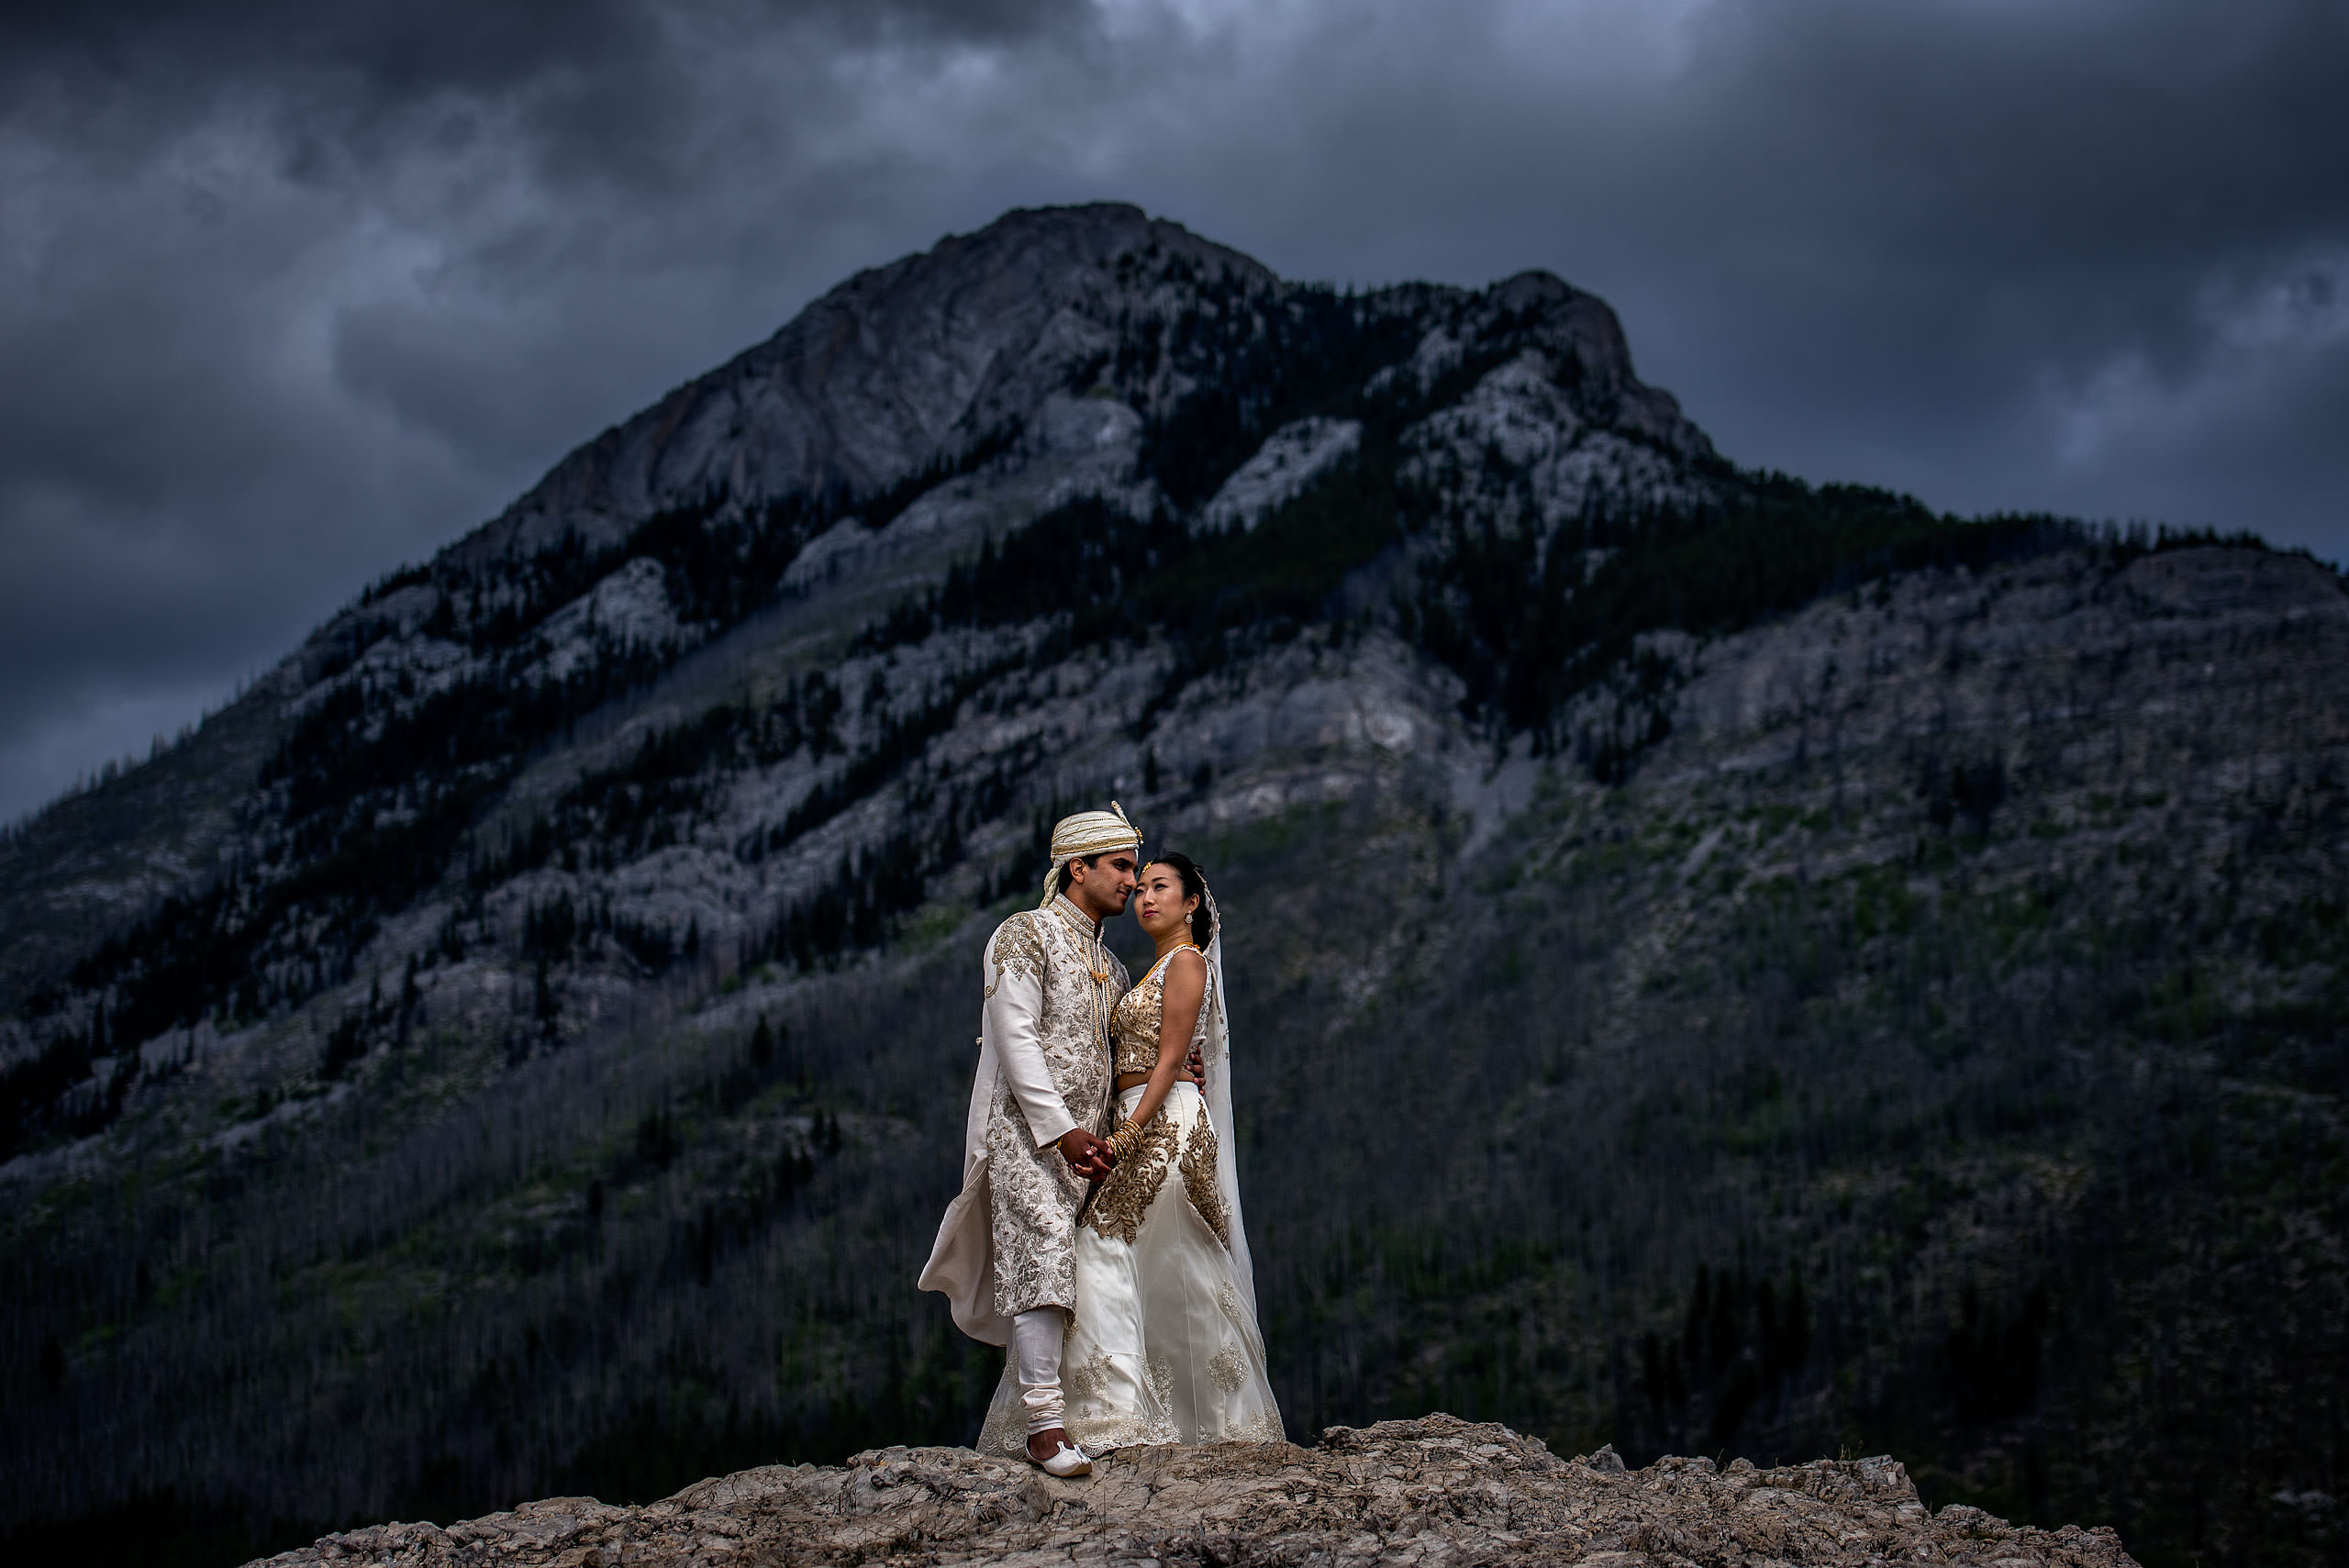 Indian bride and groom wearing traditional Indian wedding clothing embracing on top of a mountain for a cascade ballroom banff springs wedding by sean leblanc